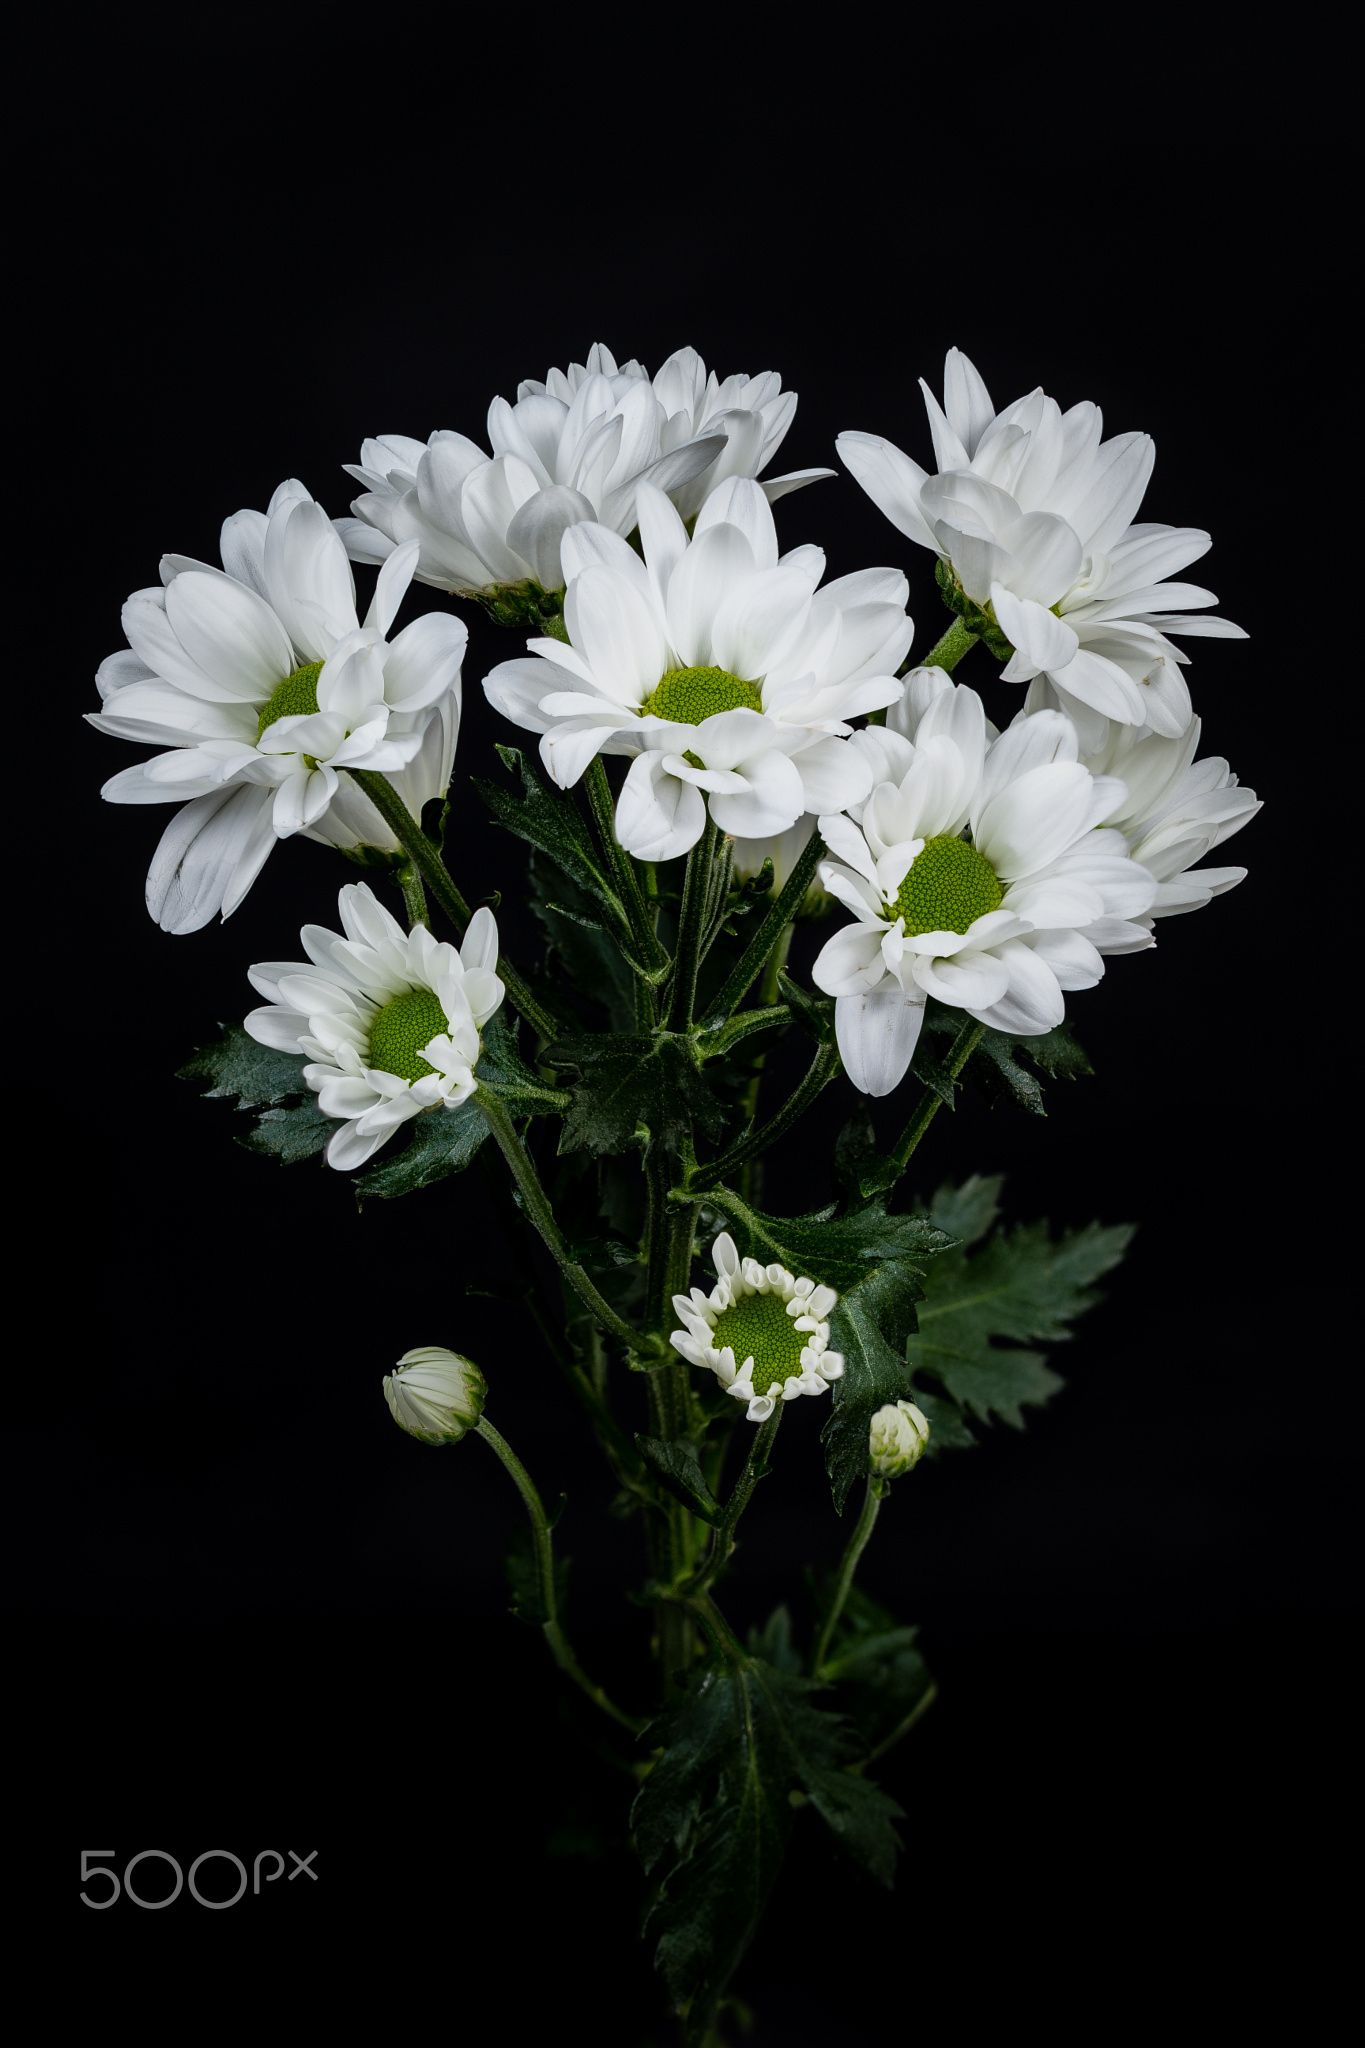 Asters Blackwhitegreen Mood Pinterest Aster Flowers And Plants